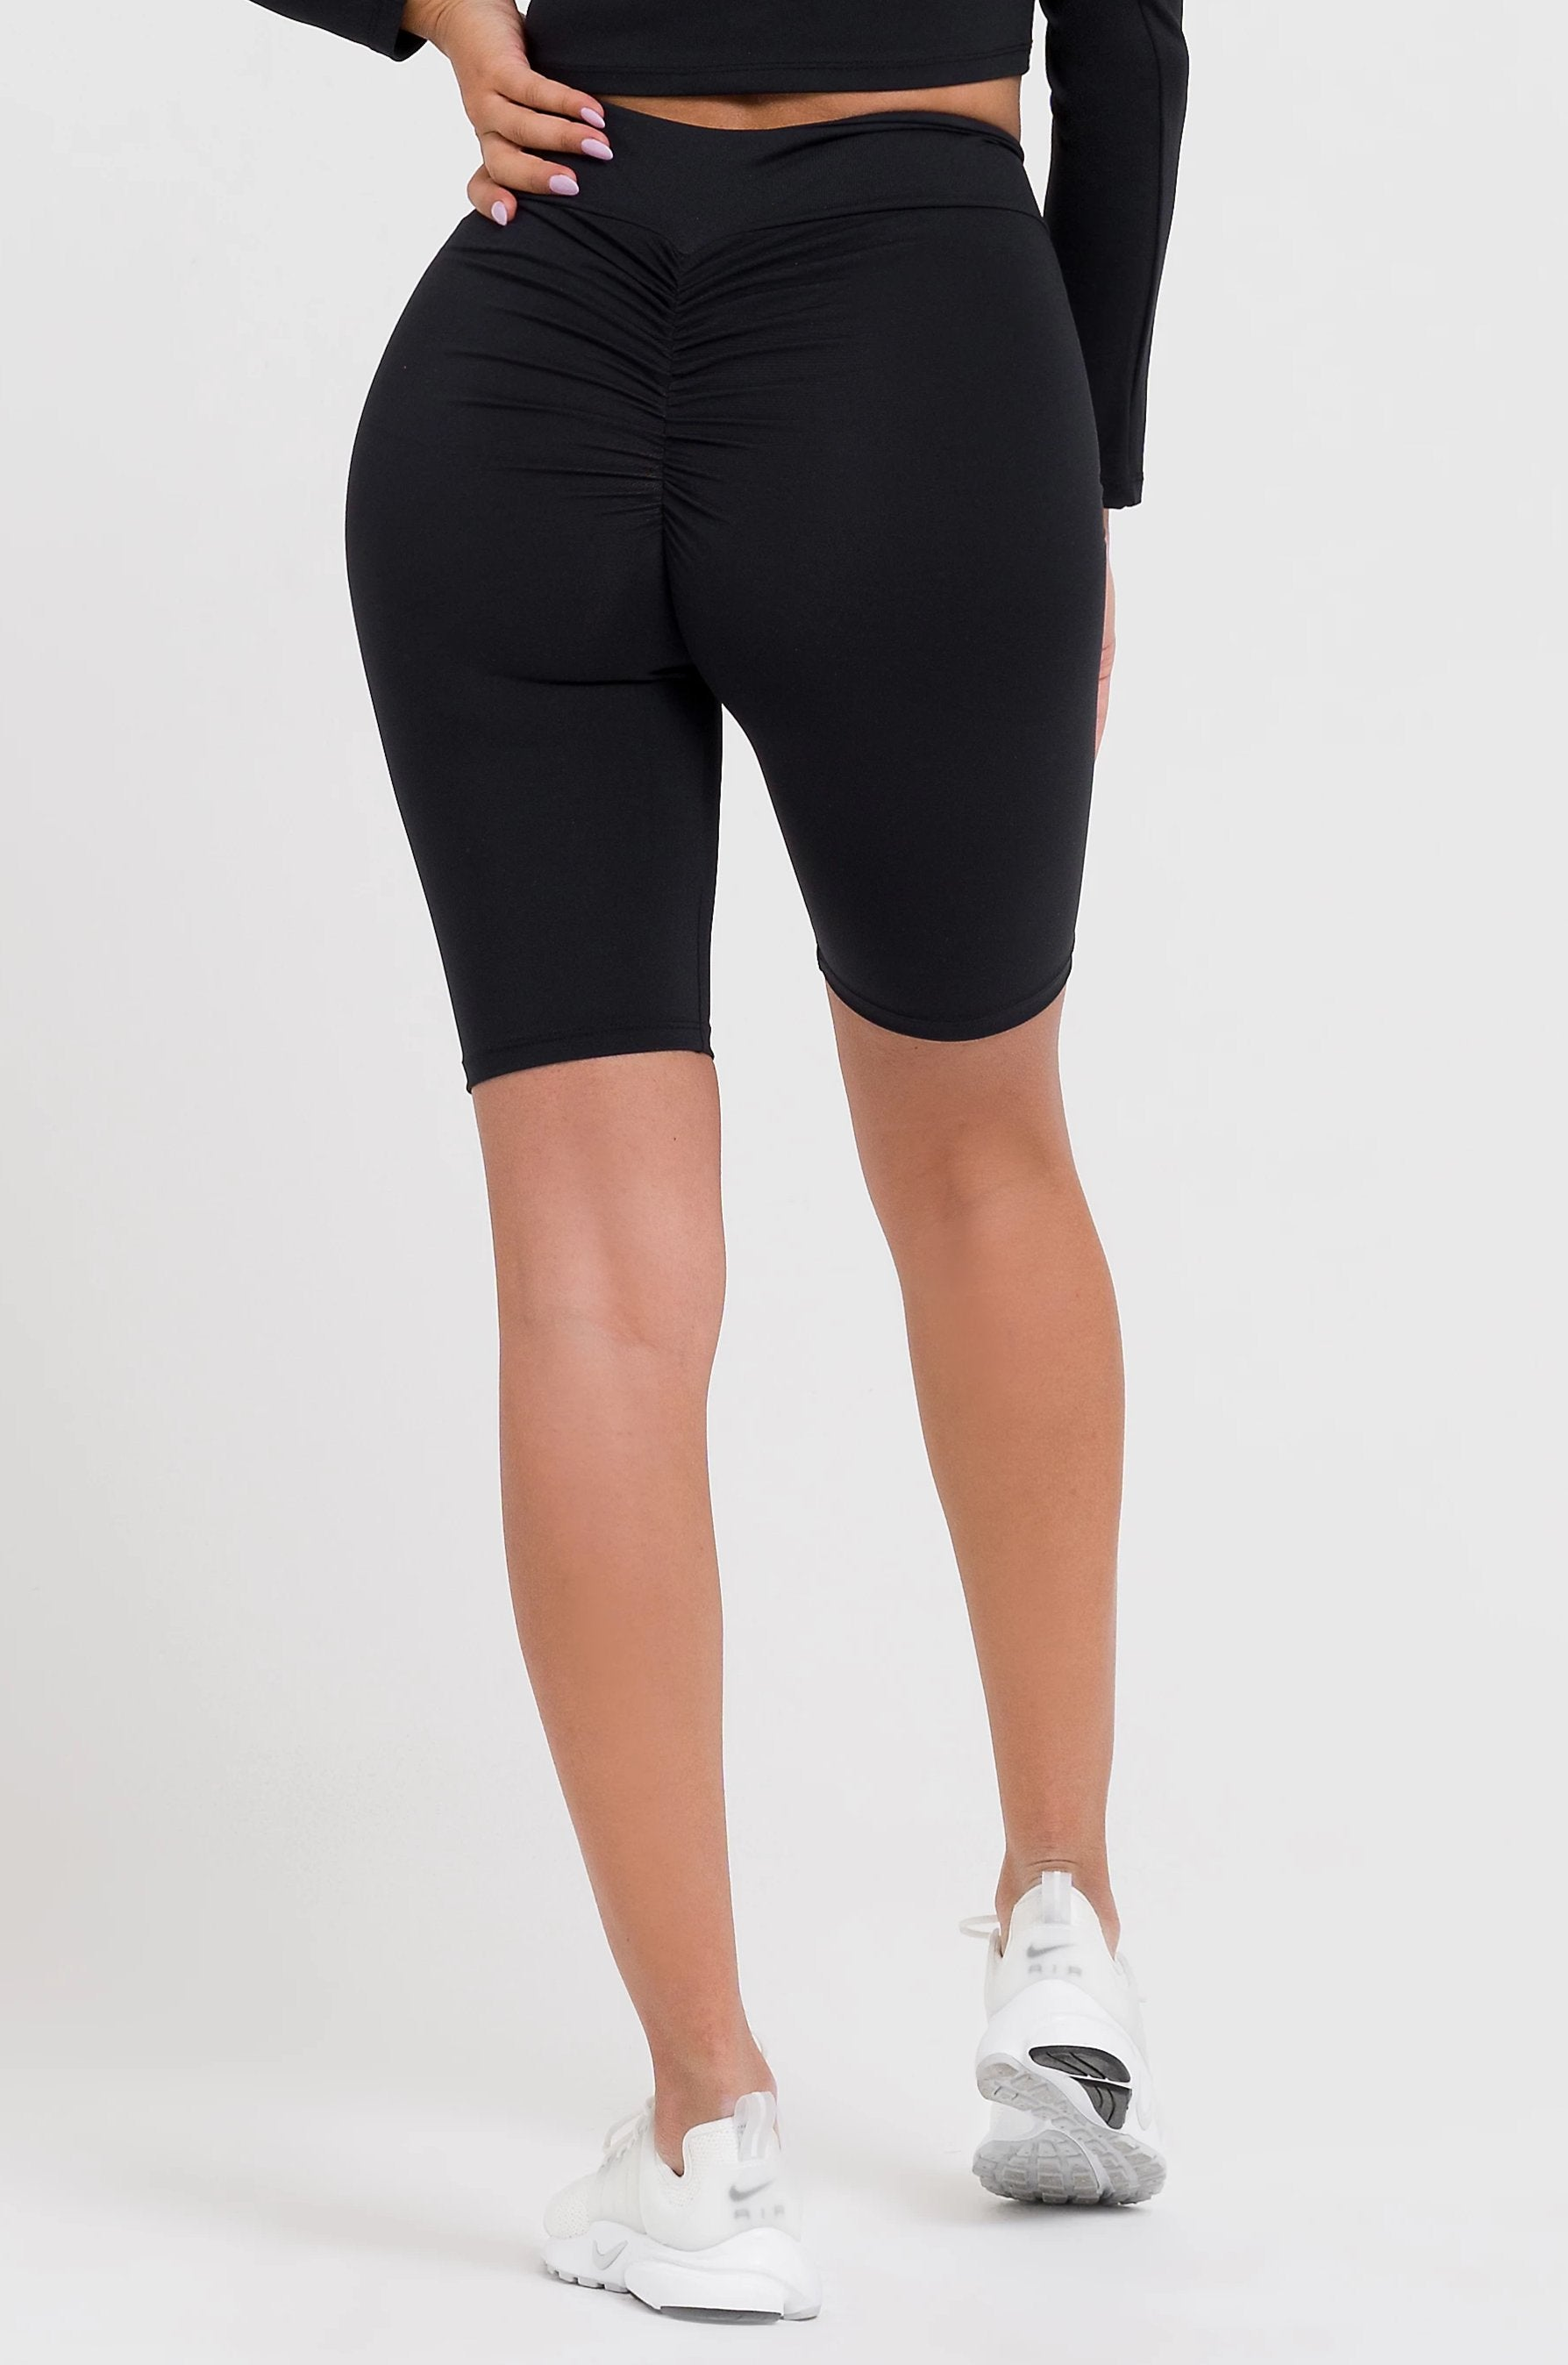 Solid Black V-Cut Scrunch Shorts